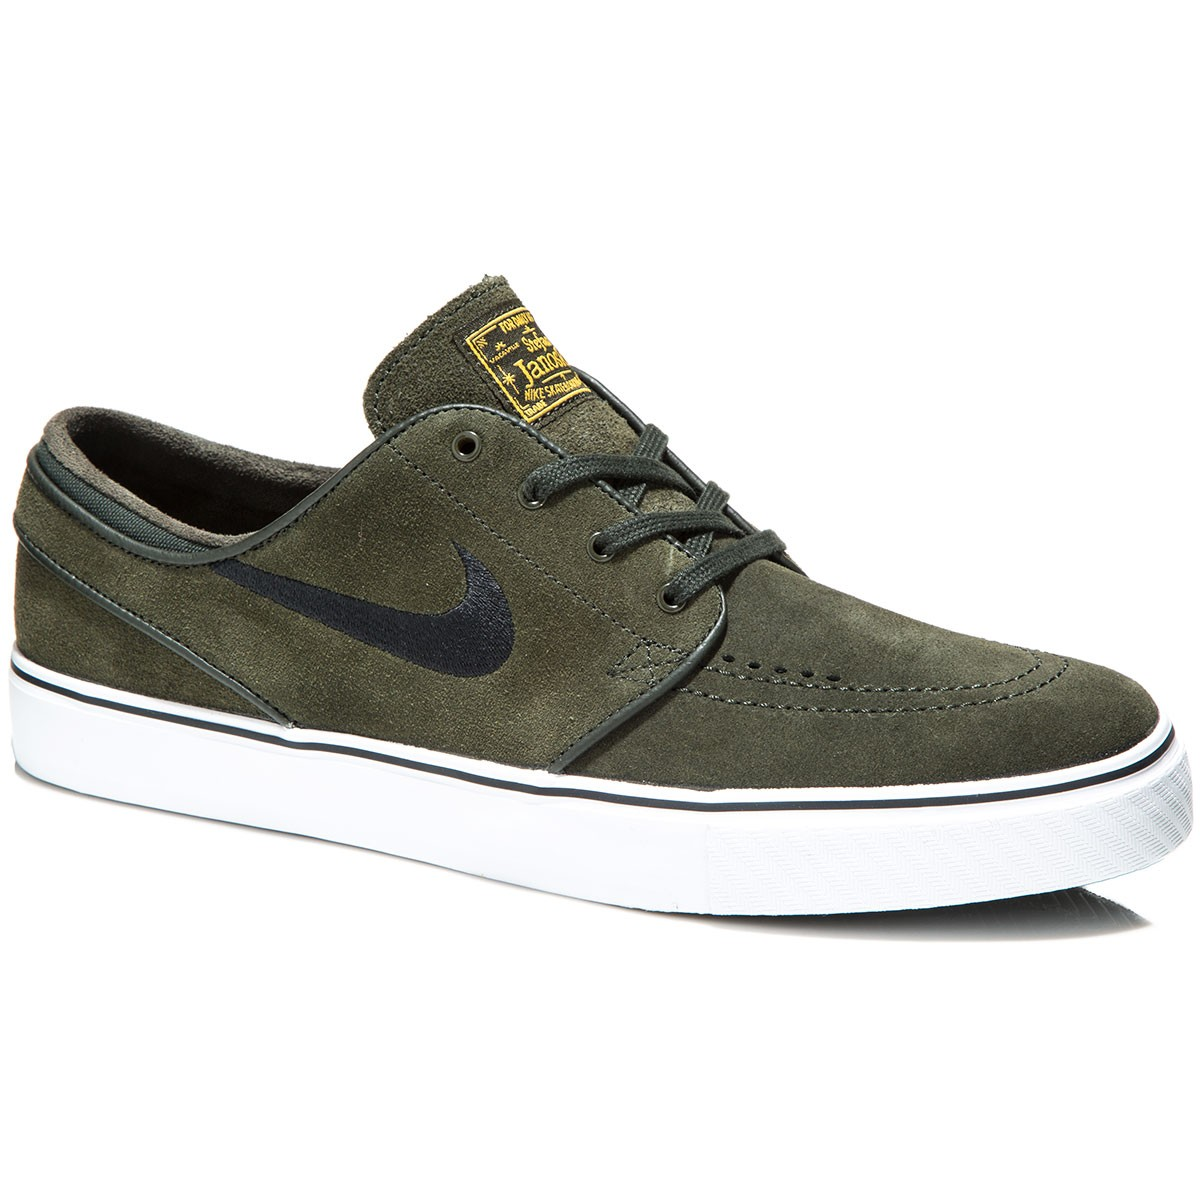 afb0c37a4ba nike janoski water blue gold sneakers